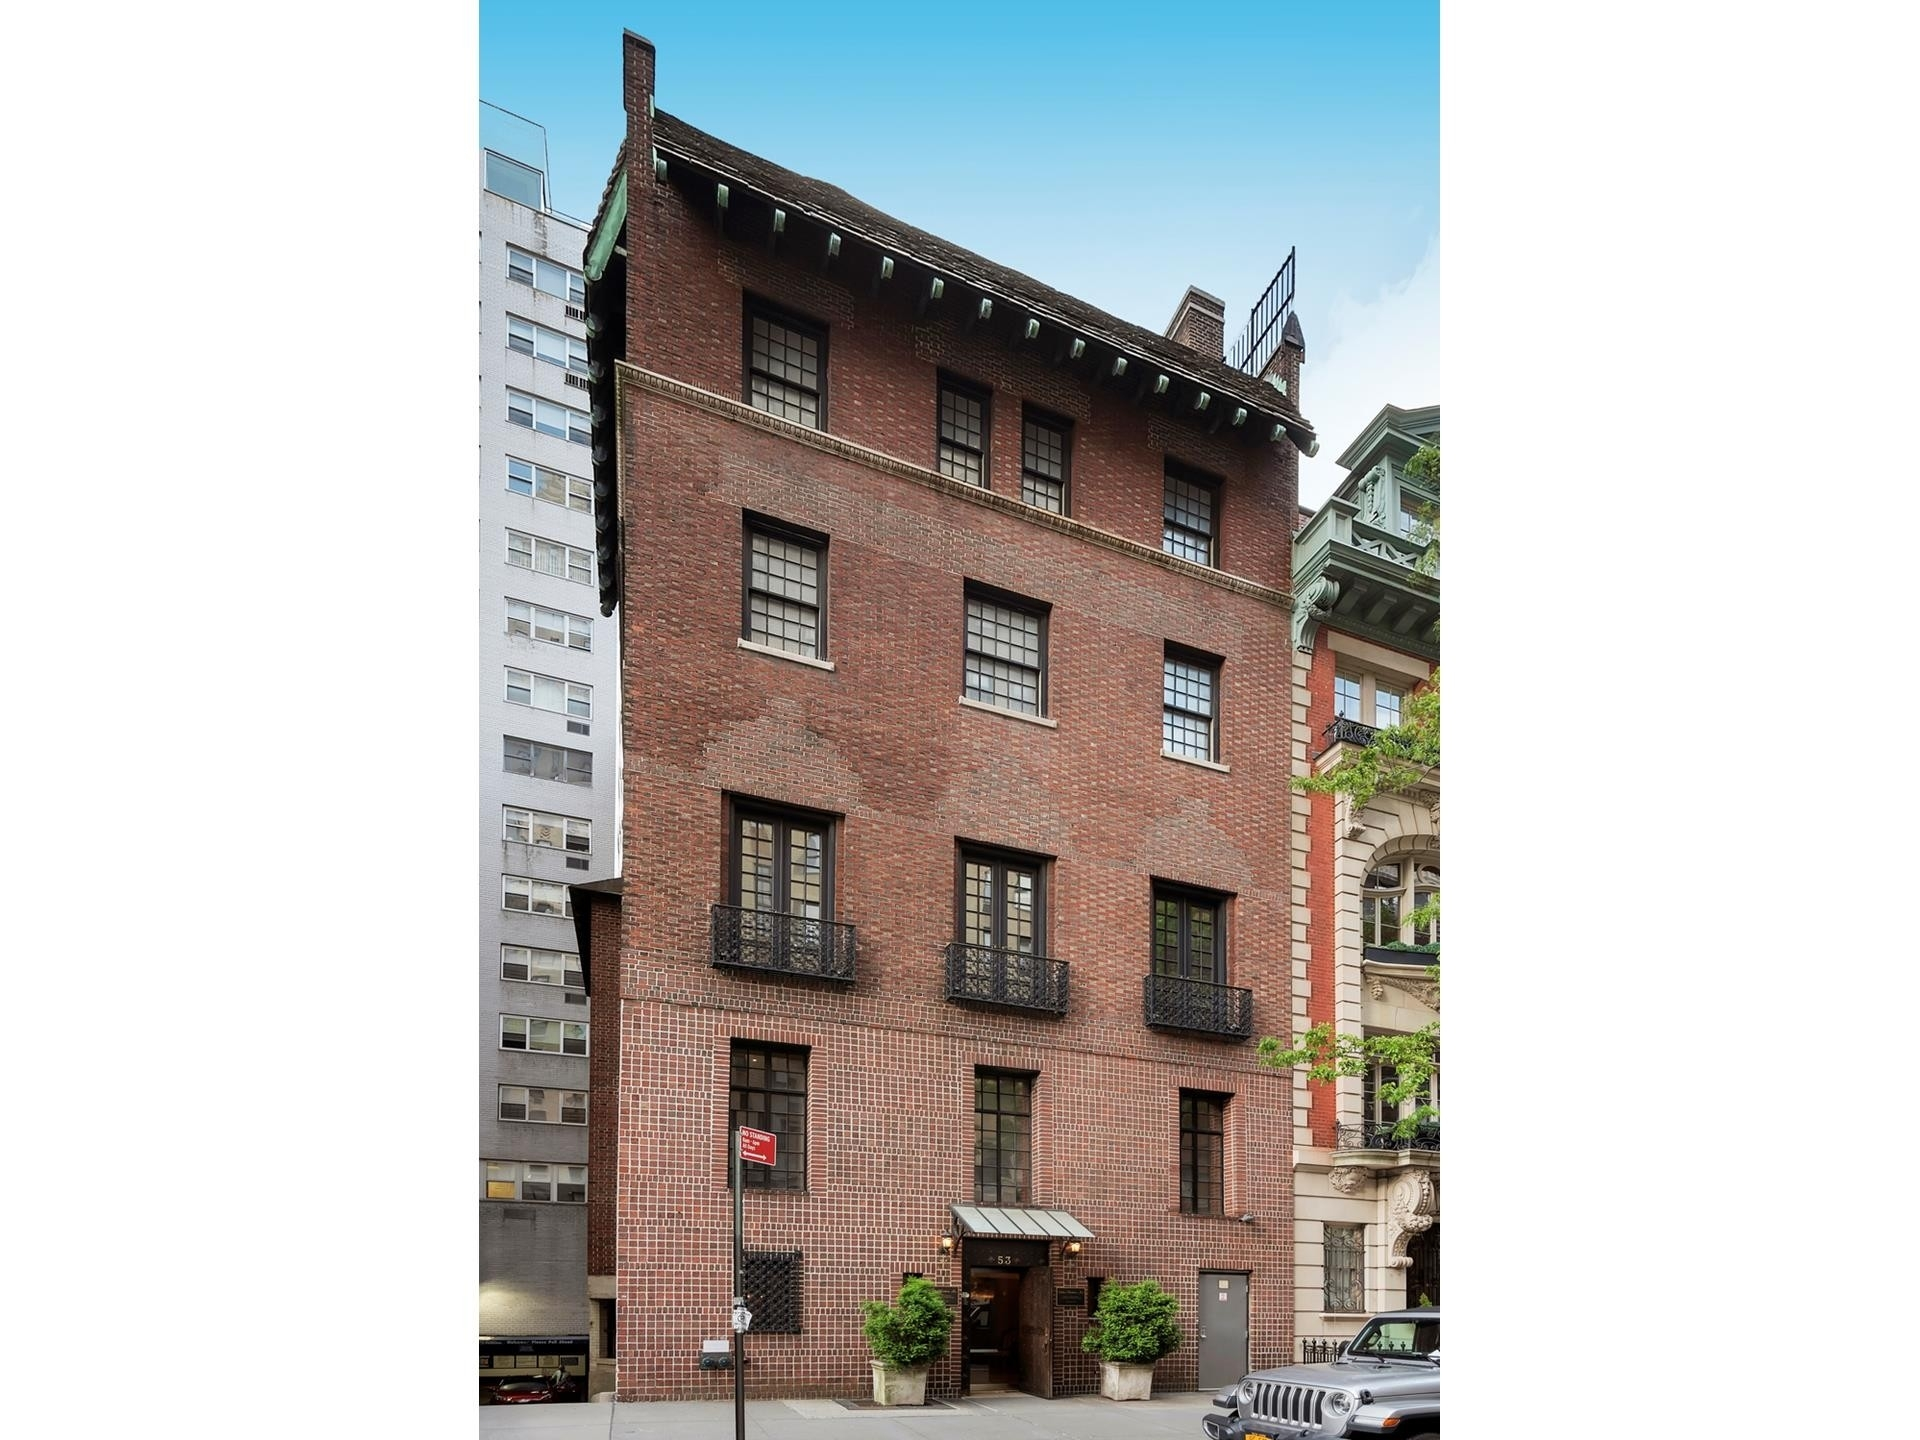 Multi Family Townhouse for Sale at 53 E 77TH ST , TOWNHOUSE Upper East Side, New York, NY 10075